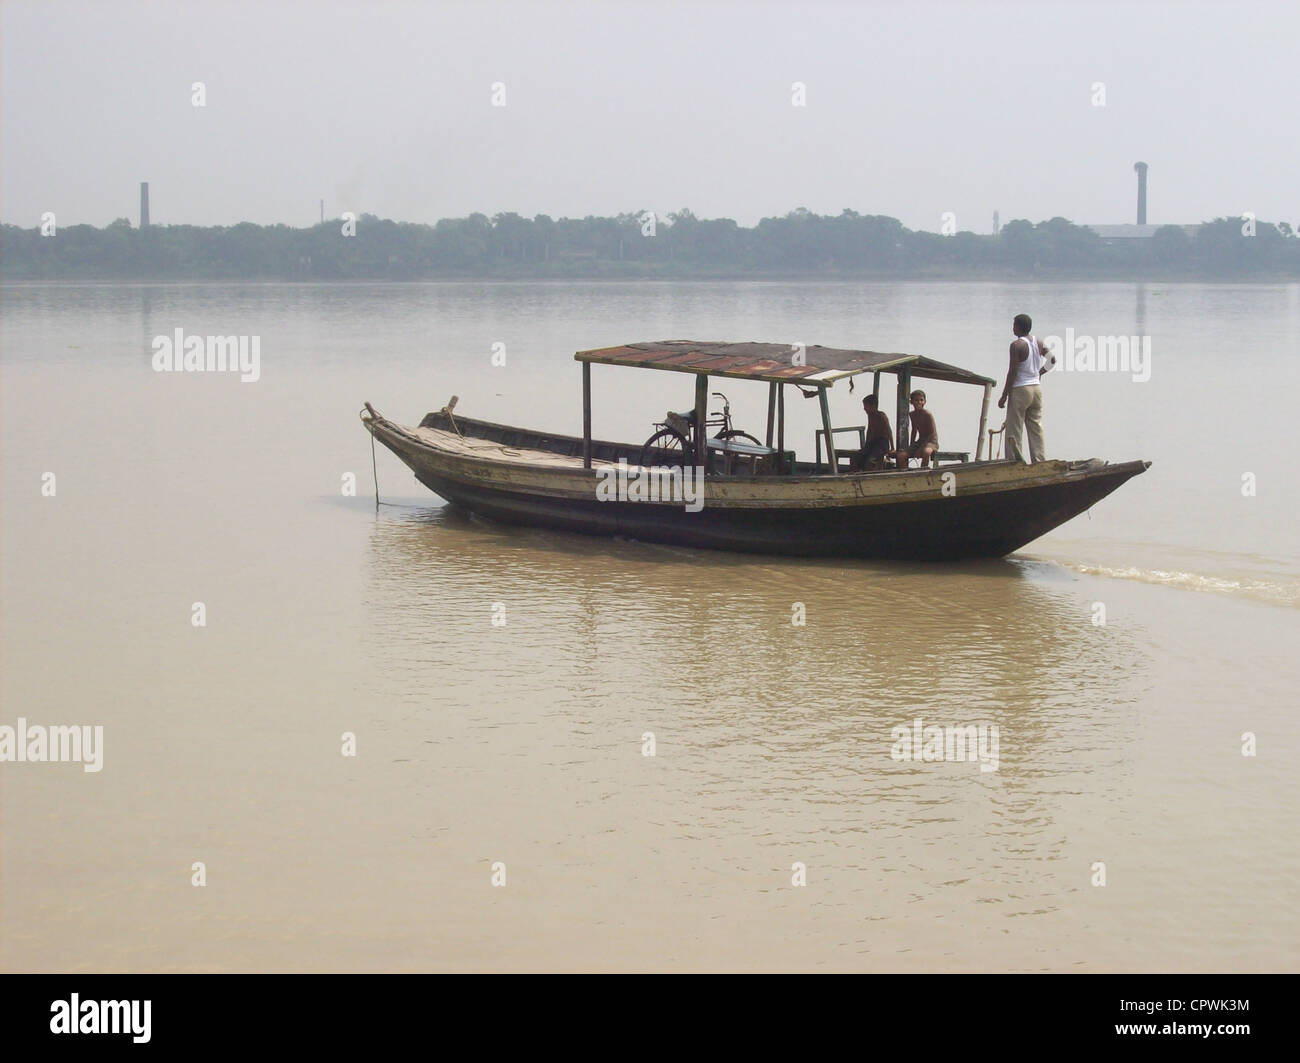 Boatmen plying on the Ganges river. - Stock Image